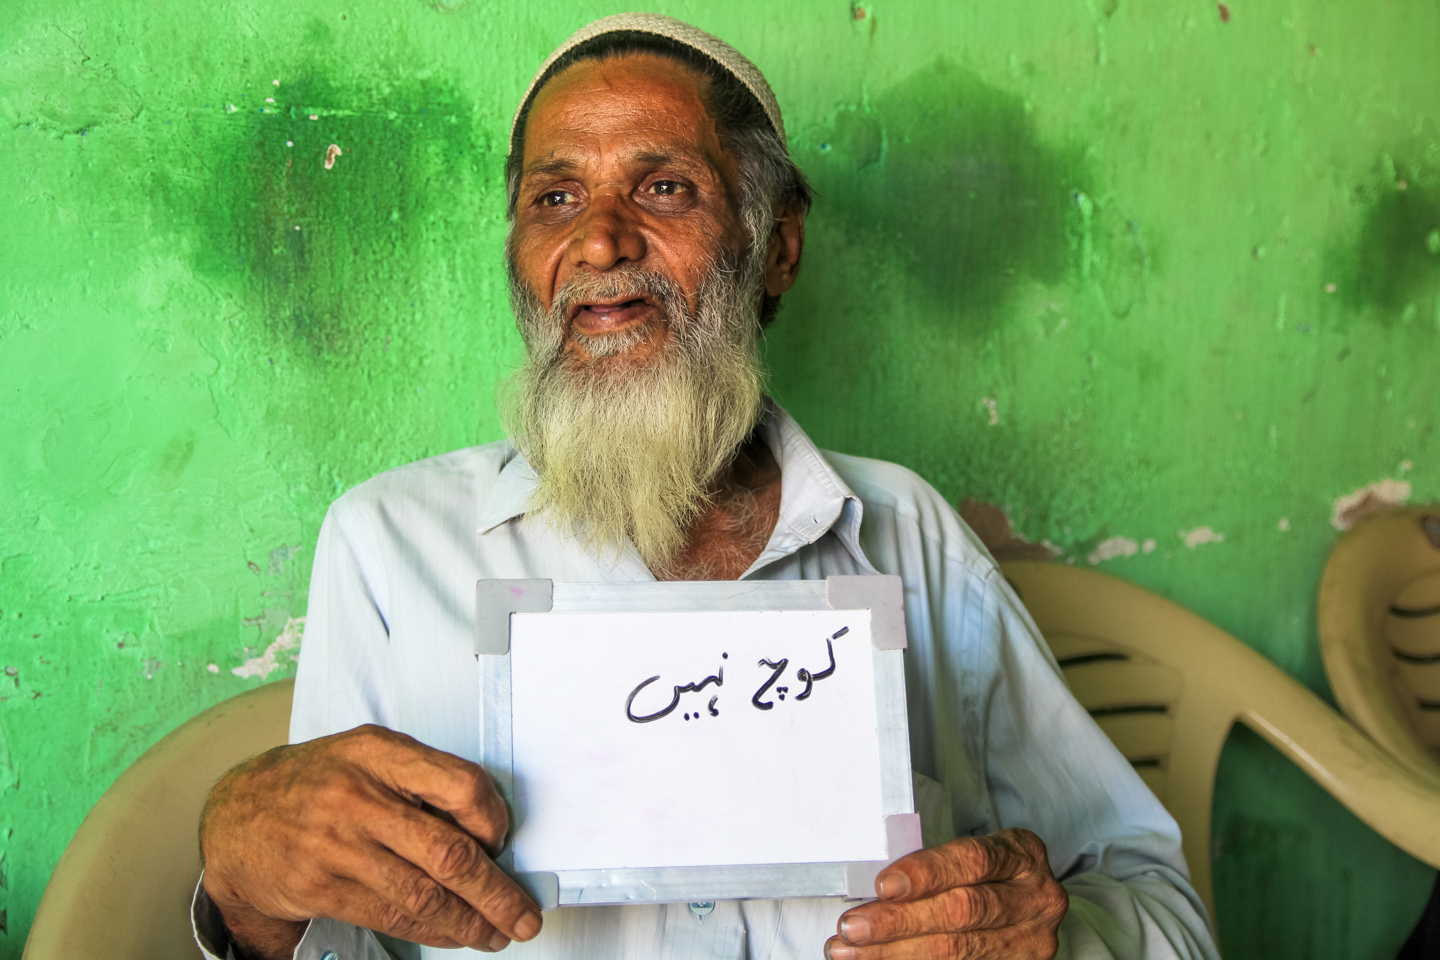 Seventy-year-old Mohammed Shabir considers himself the philosopher of Al Askari Tea Point, a chai shop in Barkas, Hyderabad. 'Man used to live in the jungle and eat, and he was happy. Now people have become materialistic and feel they have to keep up with their neighbors. That is what has made people unhappy - being selfish instead of doing what makes them happy. All said and done, if you think the right thoughts and do the right things, good things will happen to you.' When asked what the word 'chai' makes him think of, Mohammed laughs. 'That is a big question you're asking,' he says, and writes 'nothing.'